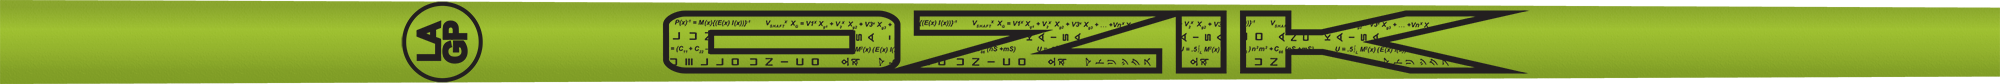 Ozik White Tie: Lime Green Black Matte - Wood 40 A